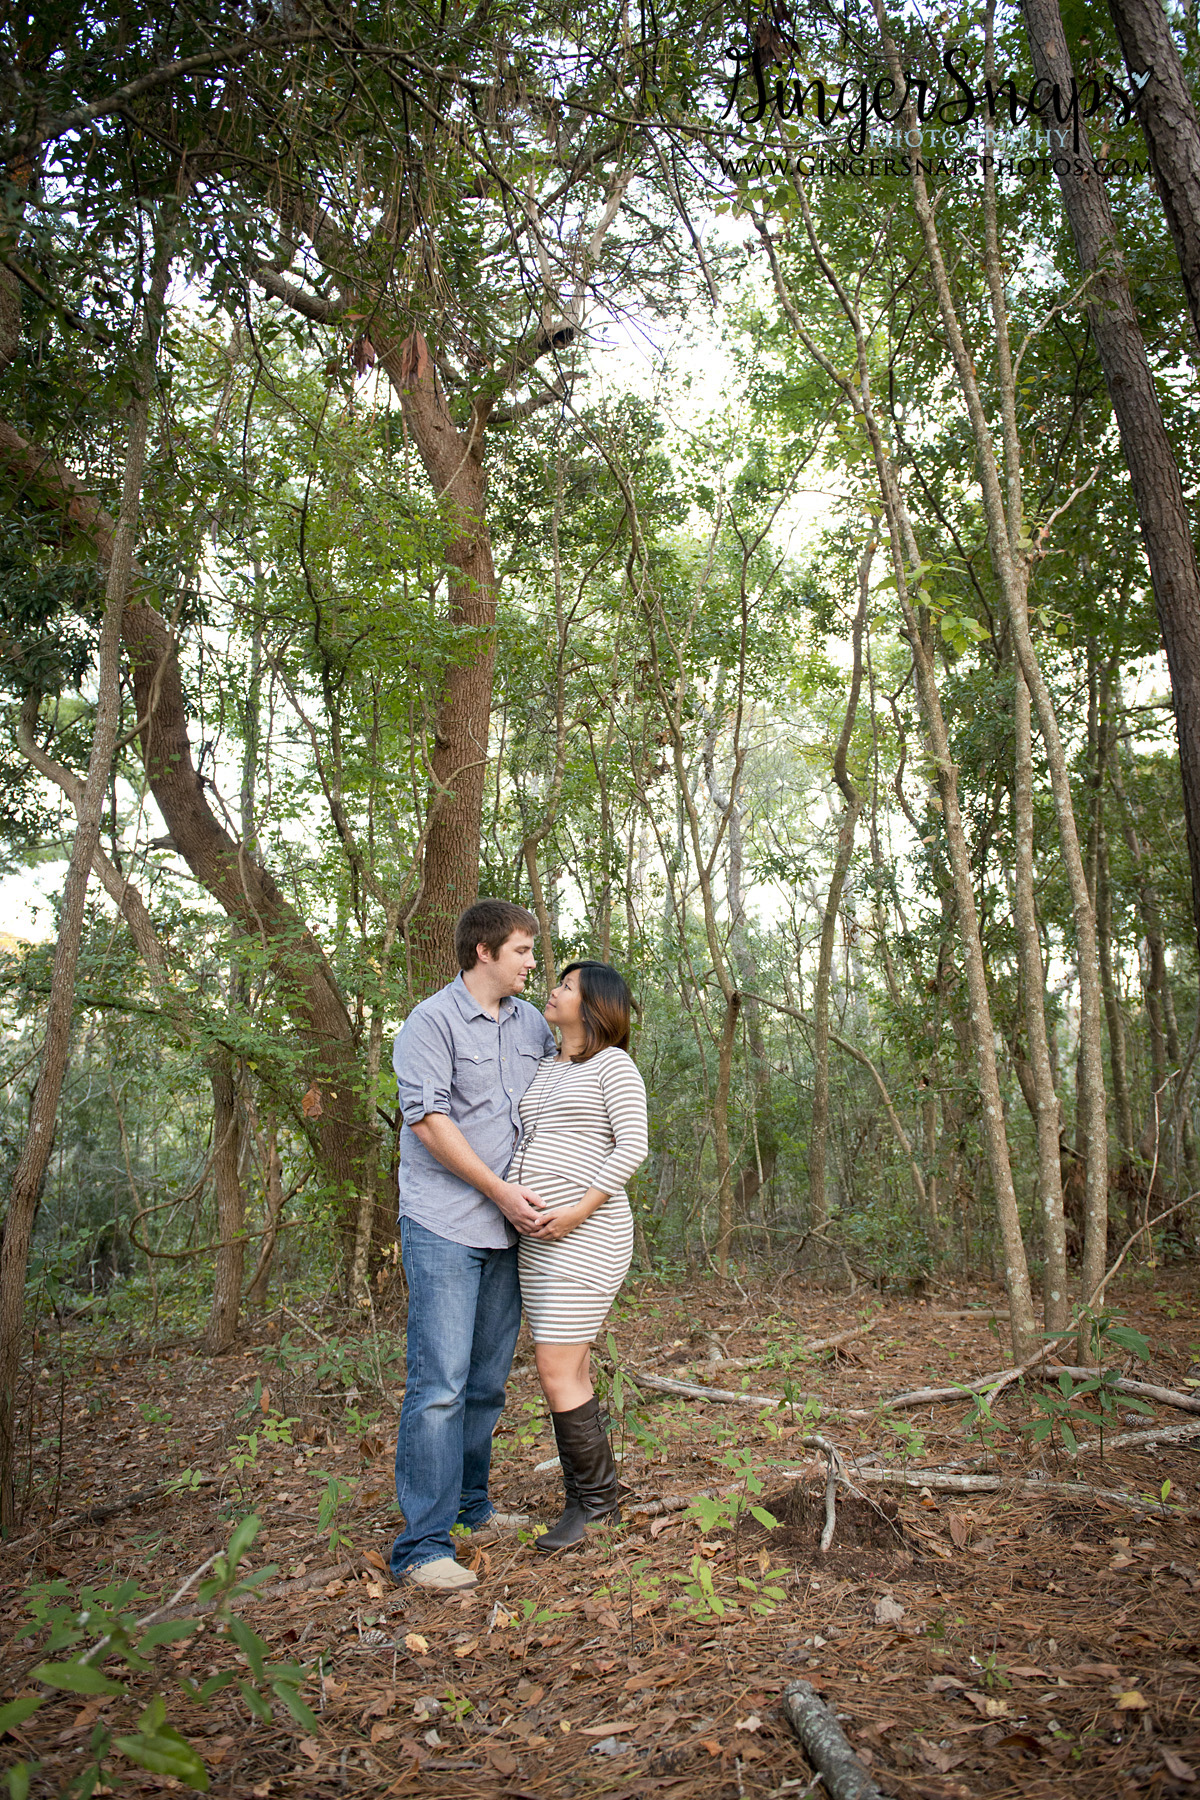 GingerSnaps Photography - 73